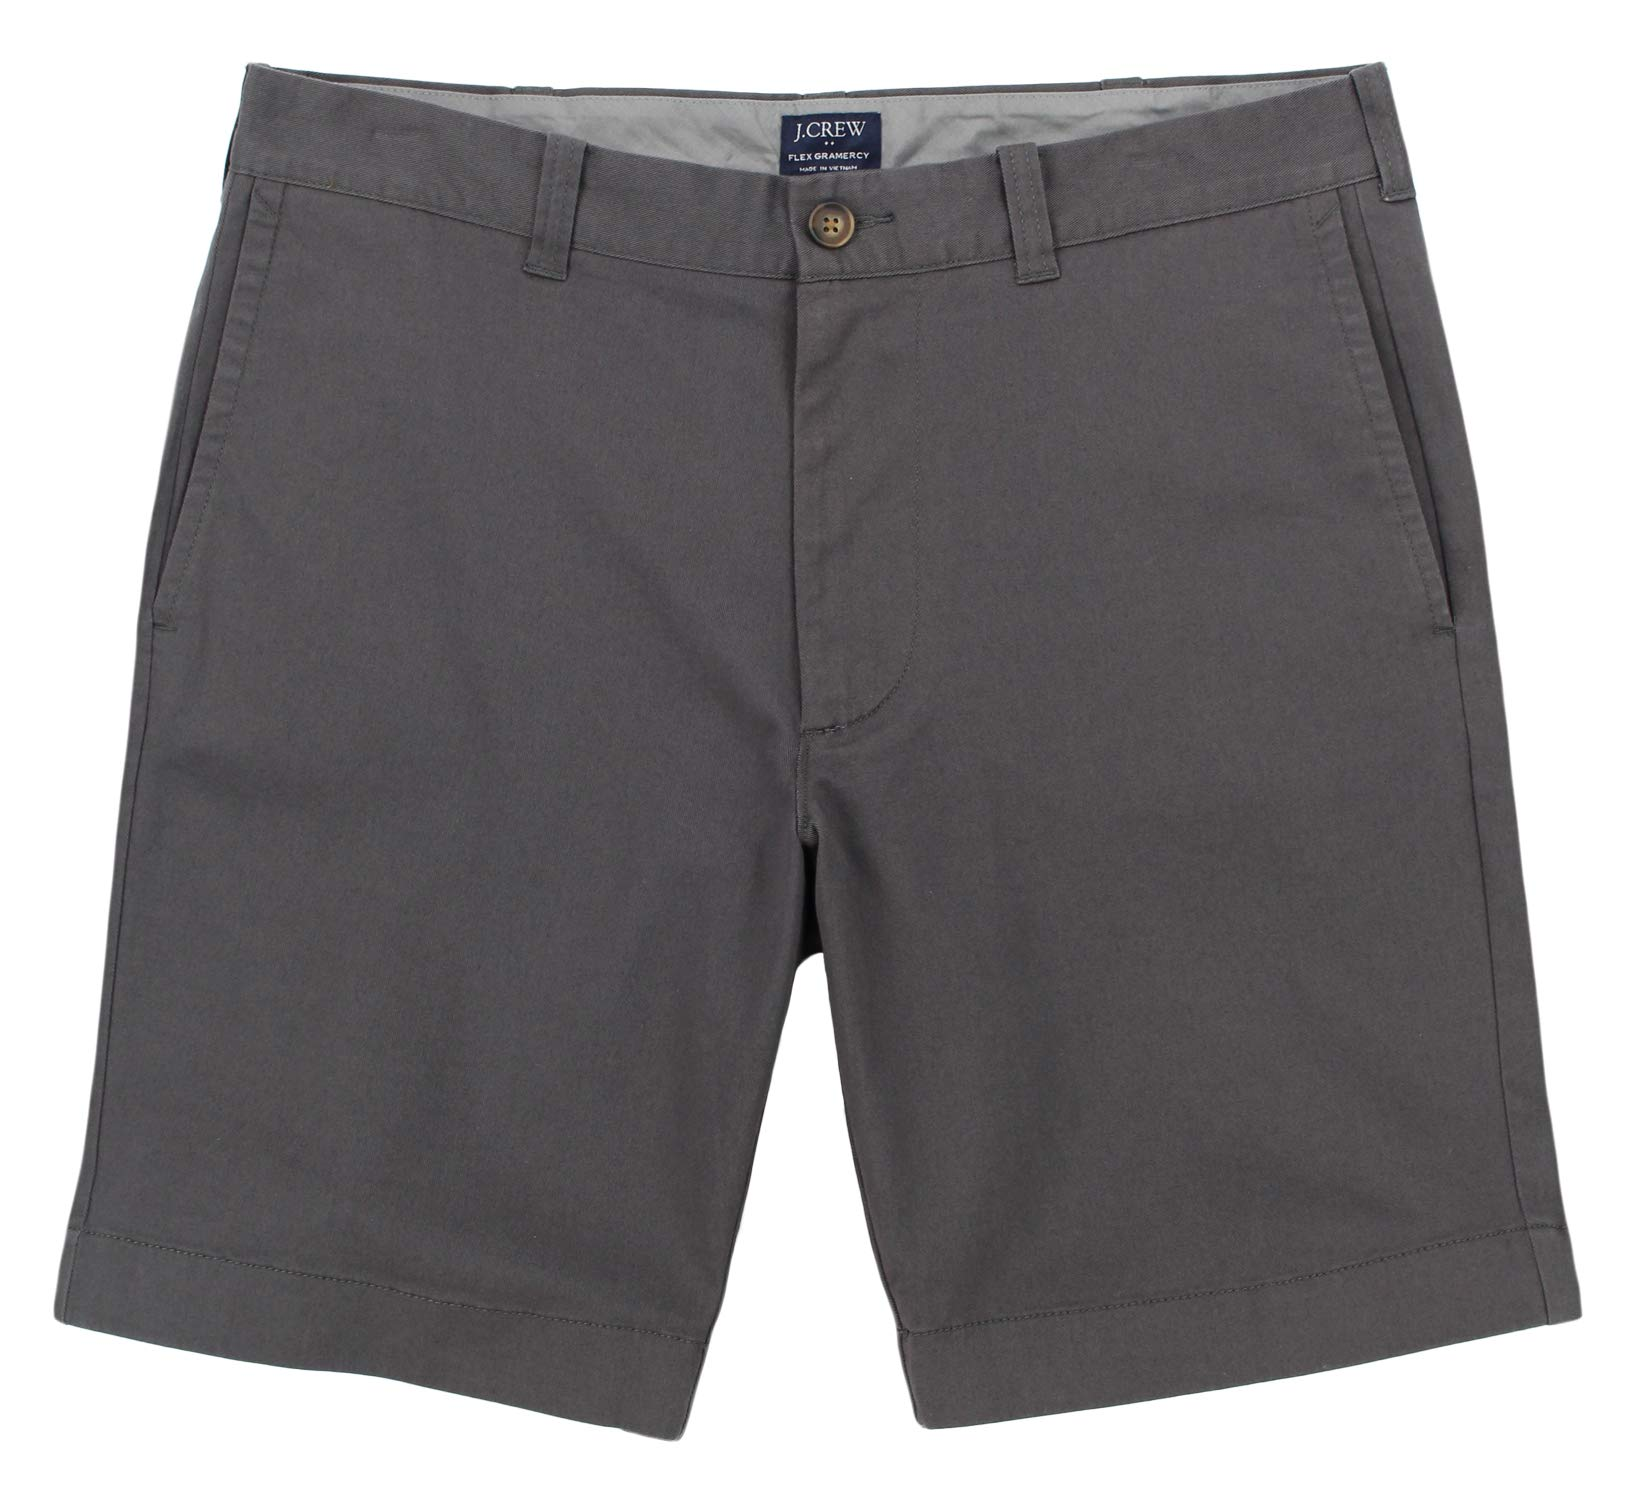 J Crew Mens Embroidered Oxford Gramercy Short Blue Size 30X9